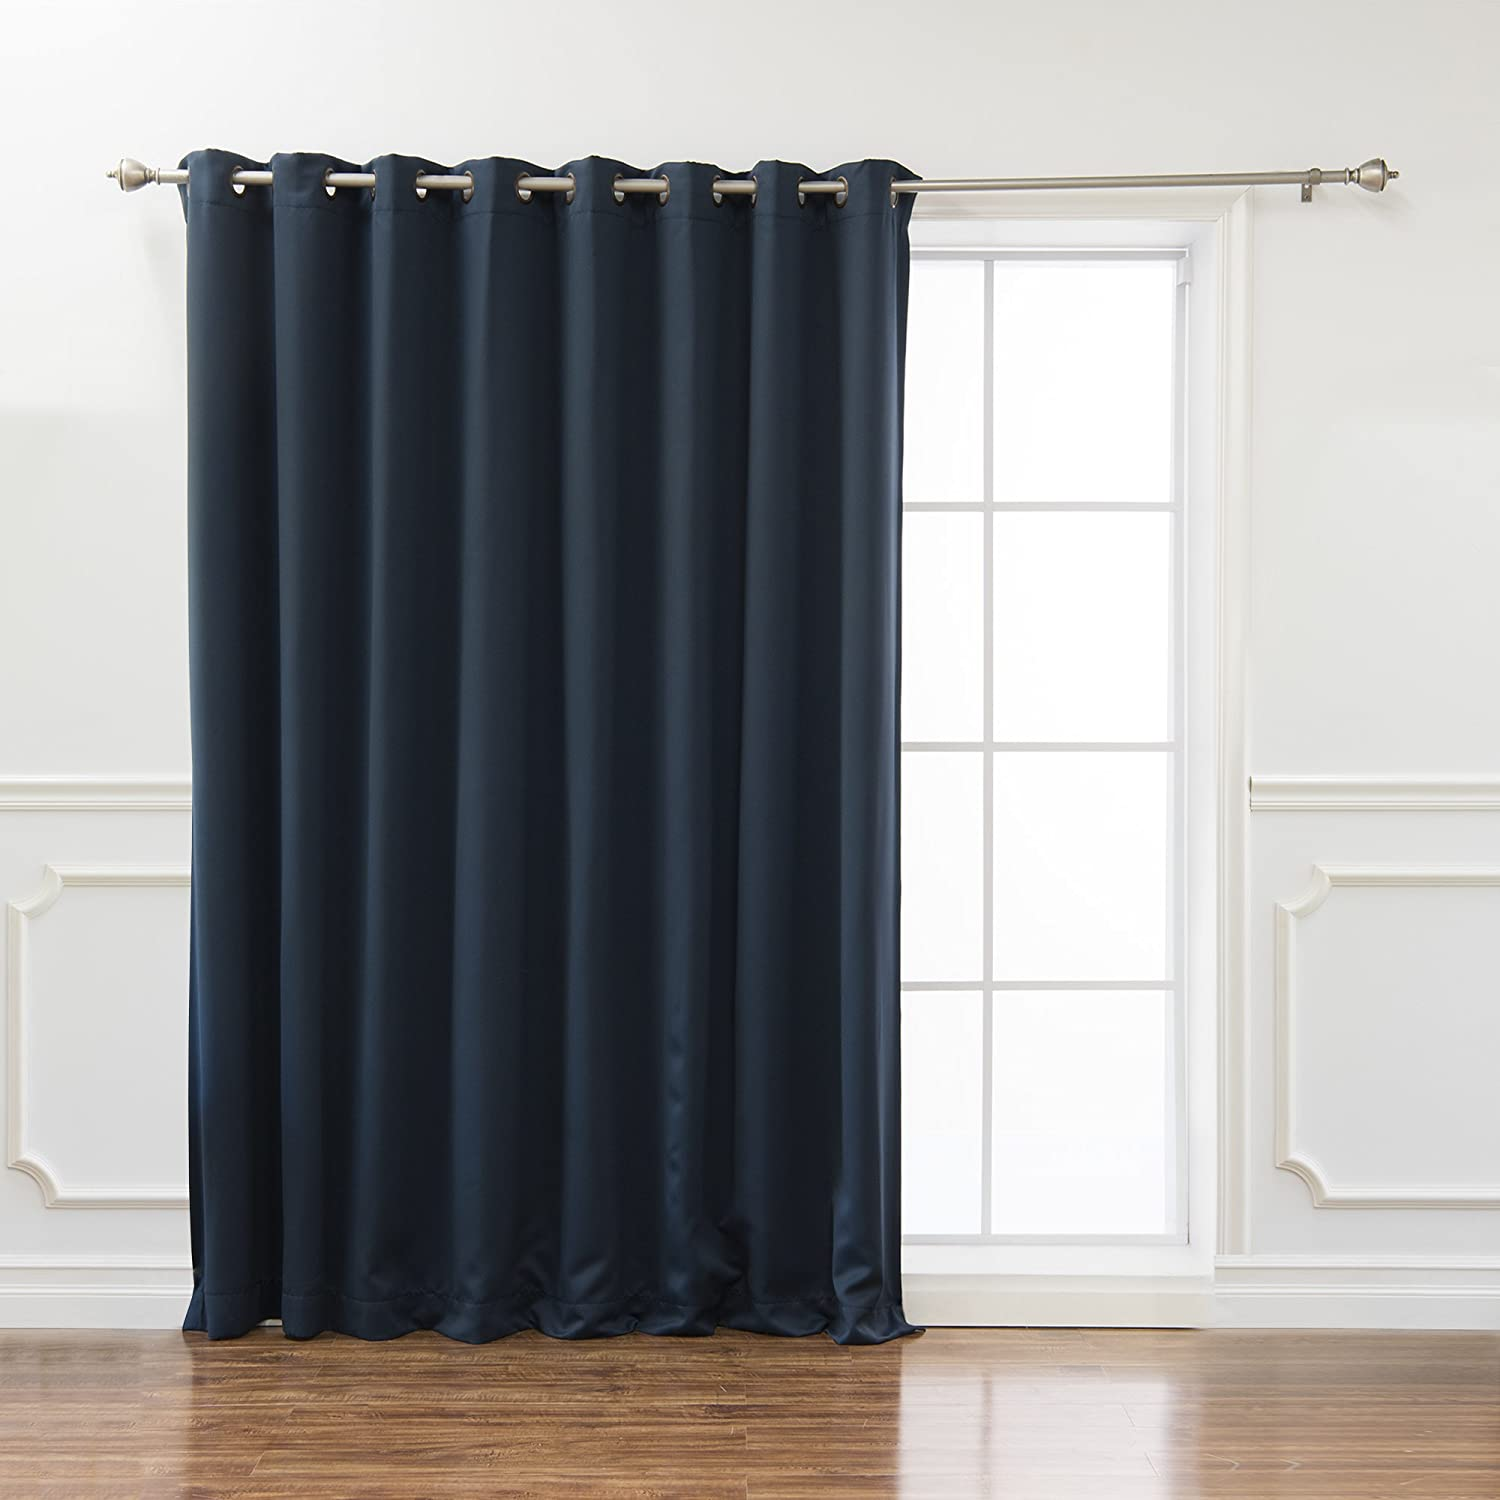 of backs blue panels rod l tie included fashion w x insulated thermal set blackout curtains pocket best amazon ca dp royal home tab back